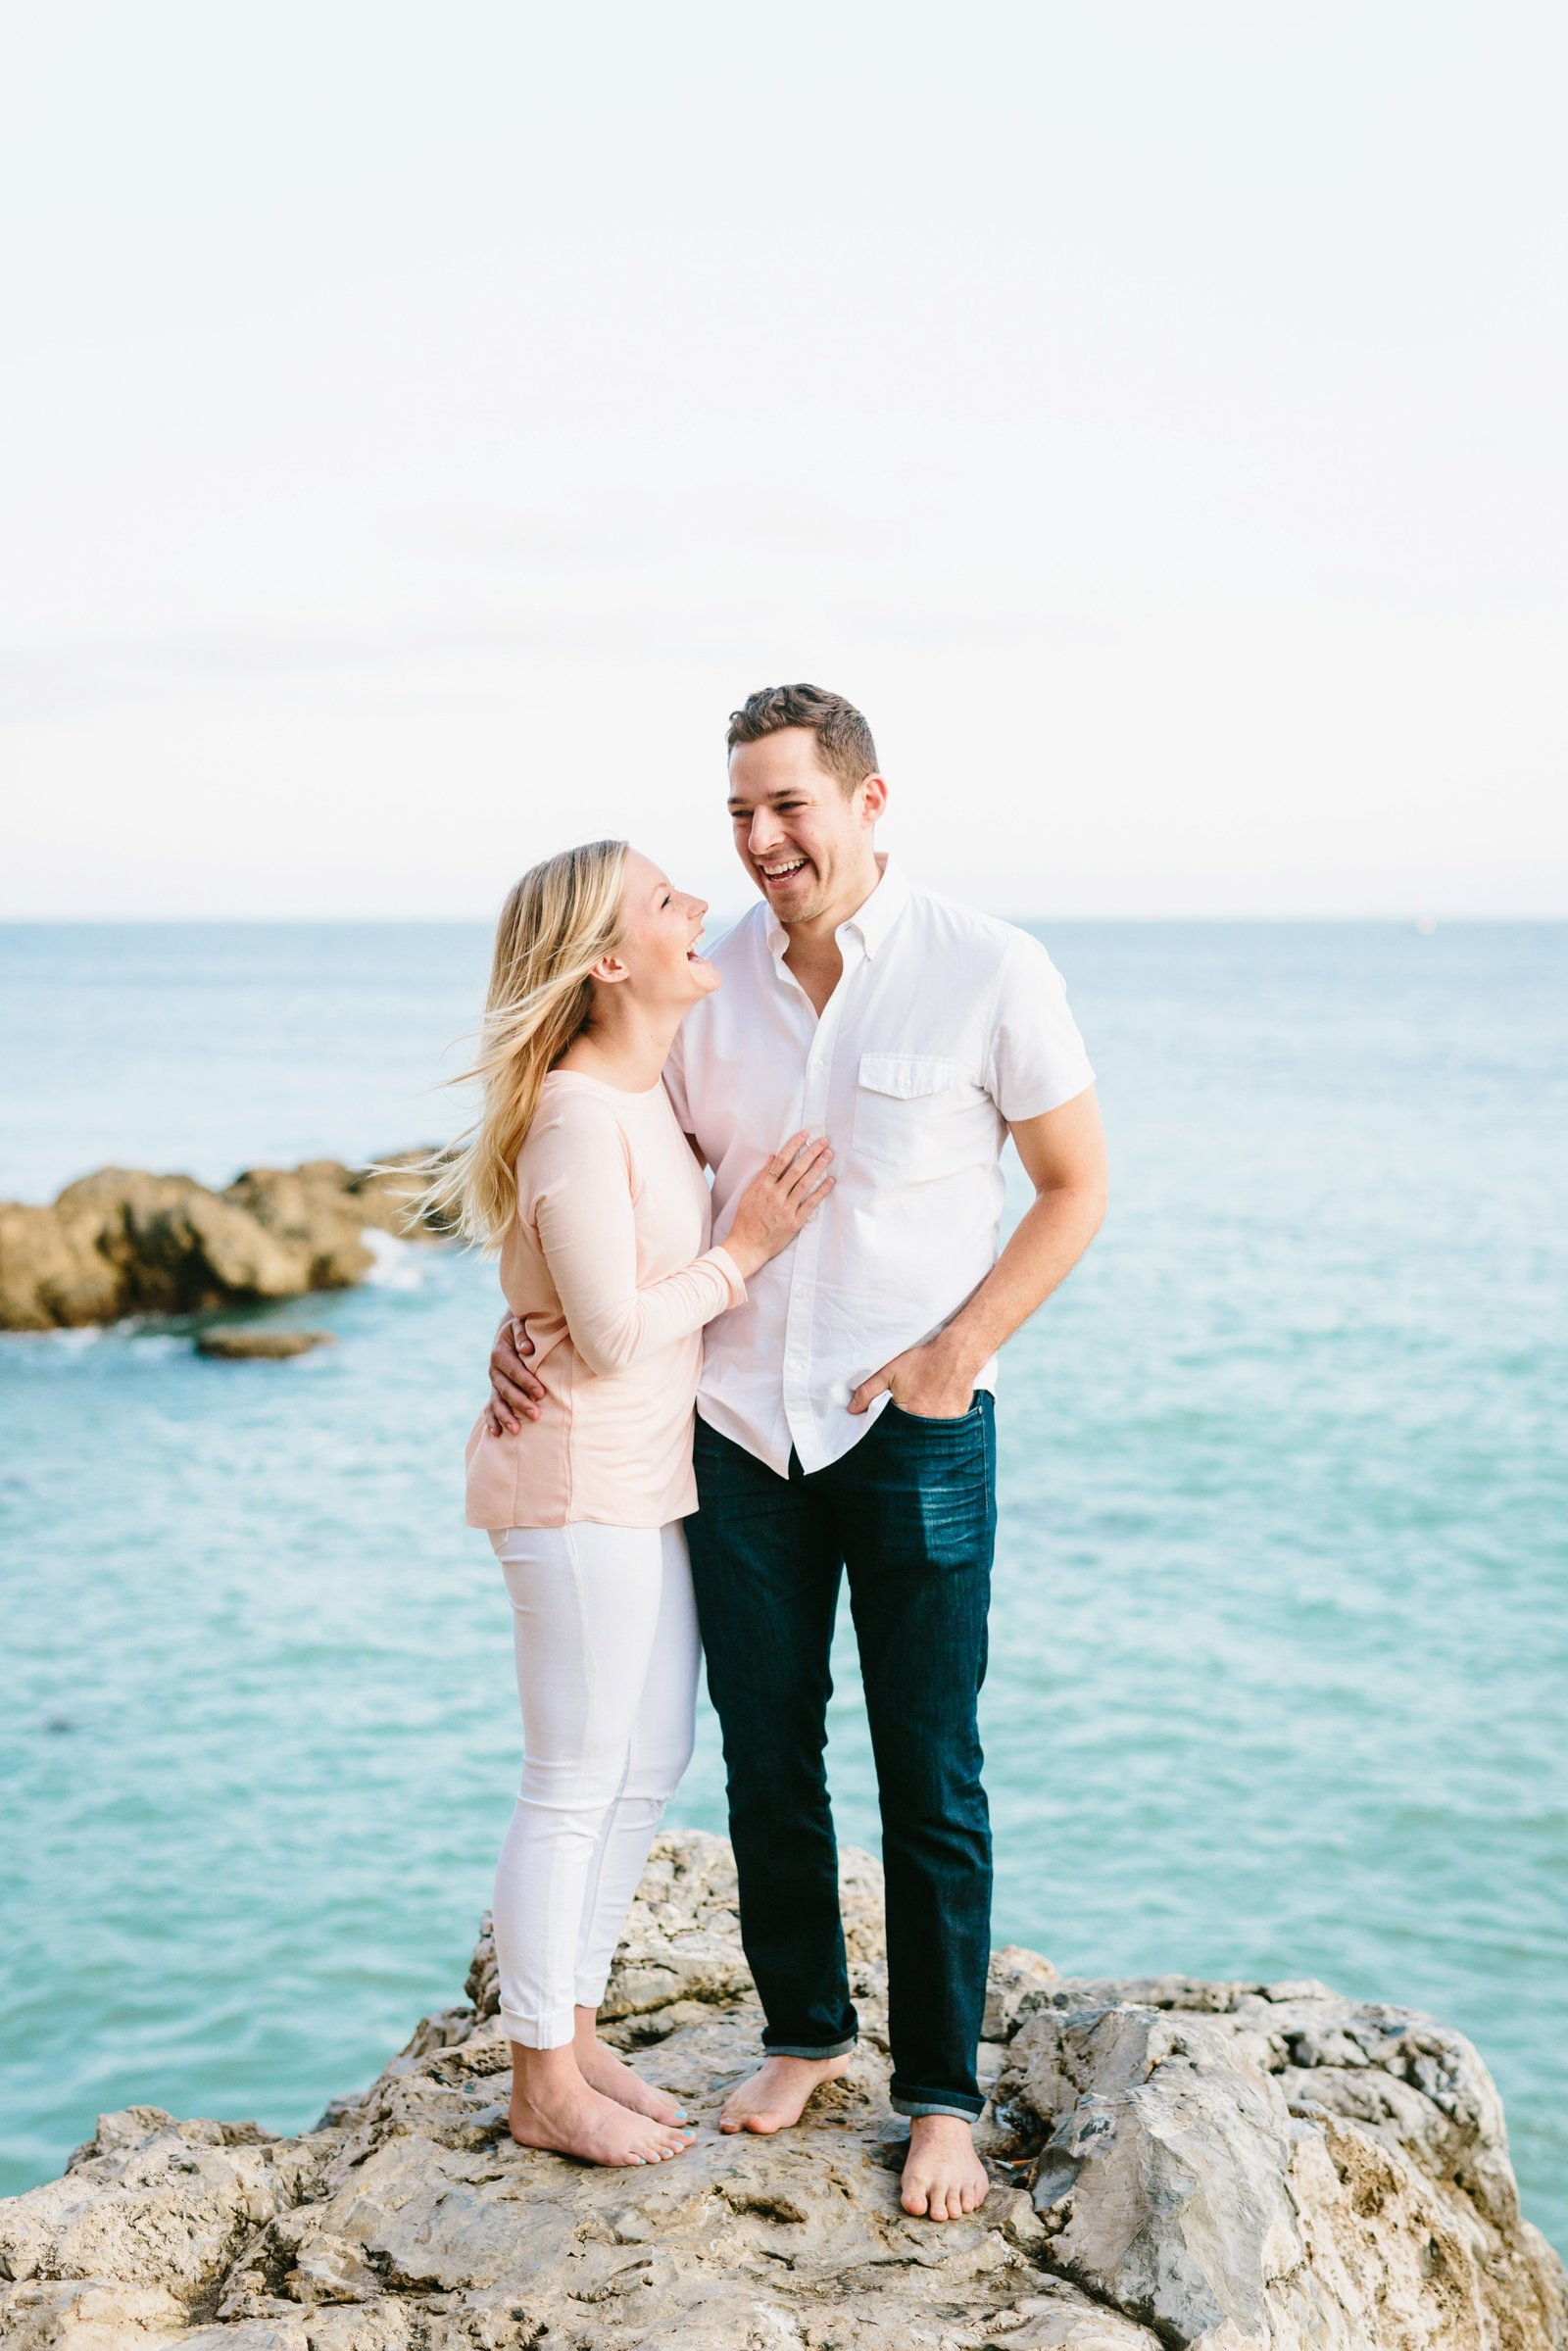 Engagement Photos-Jodee Debes Photography-053